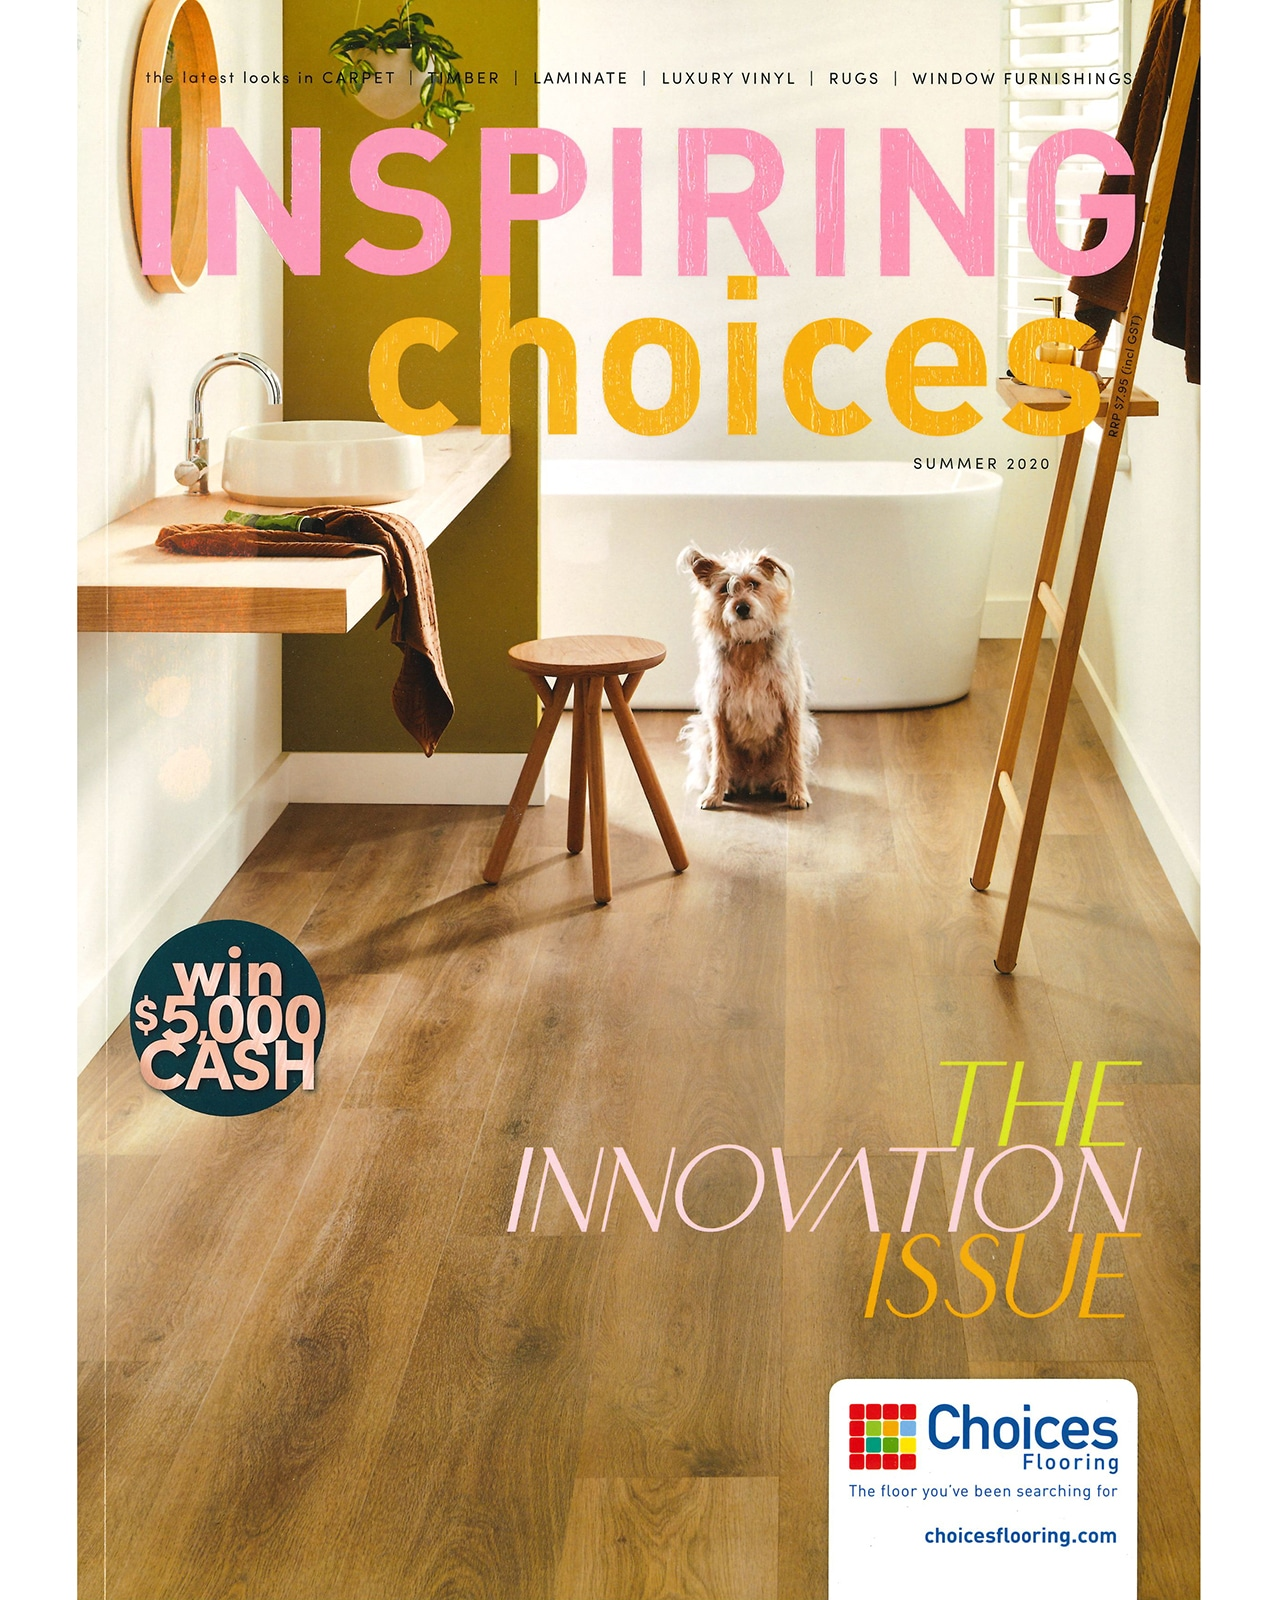 Studio Black Interiors featured in Inspiring Choices Magazine.